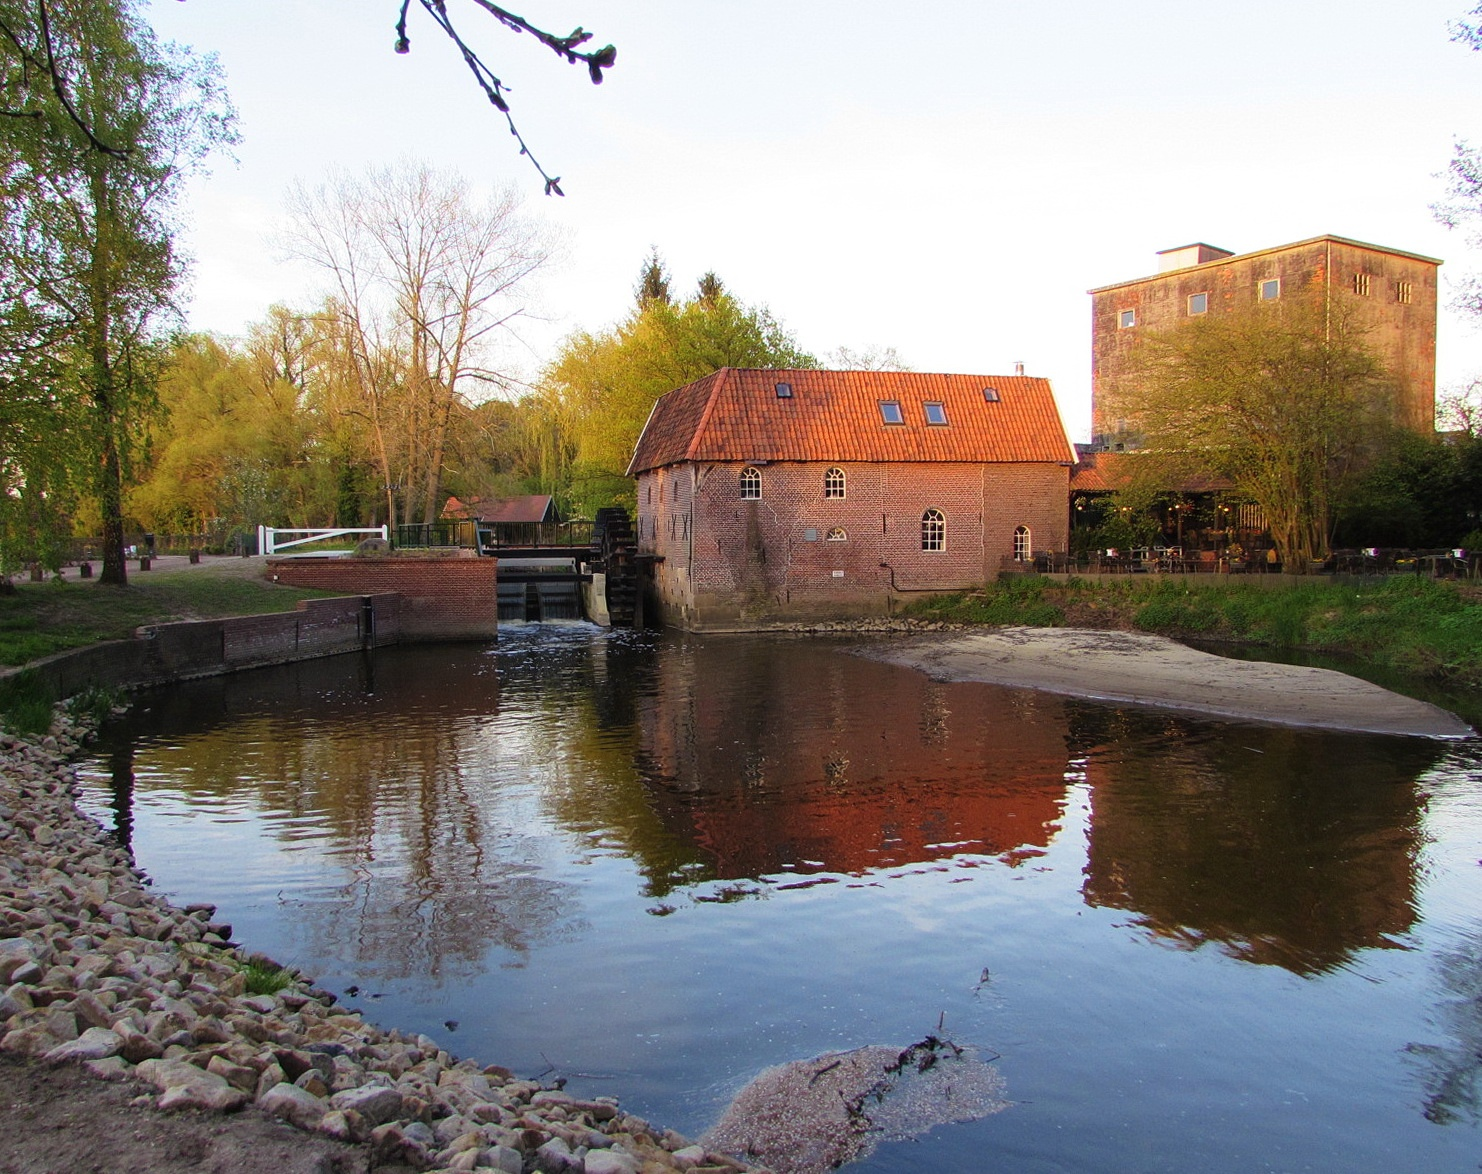 Water mill Berenschot, the Netherlands by Annemarie Frieser